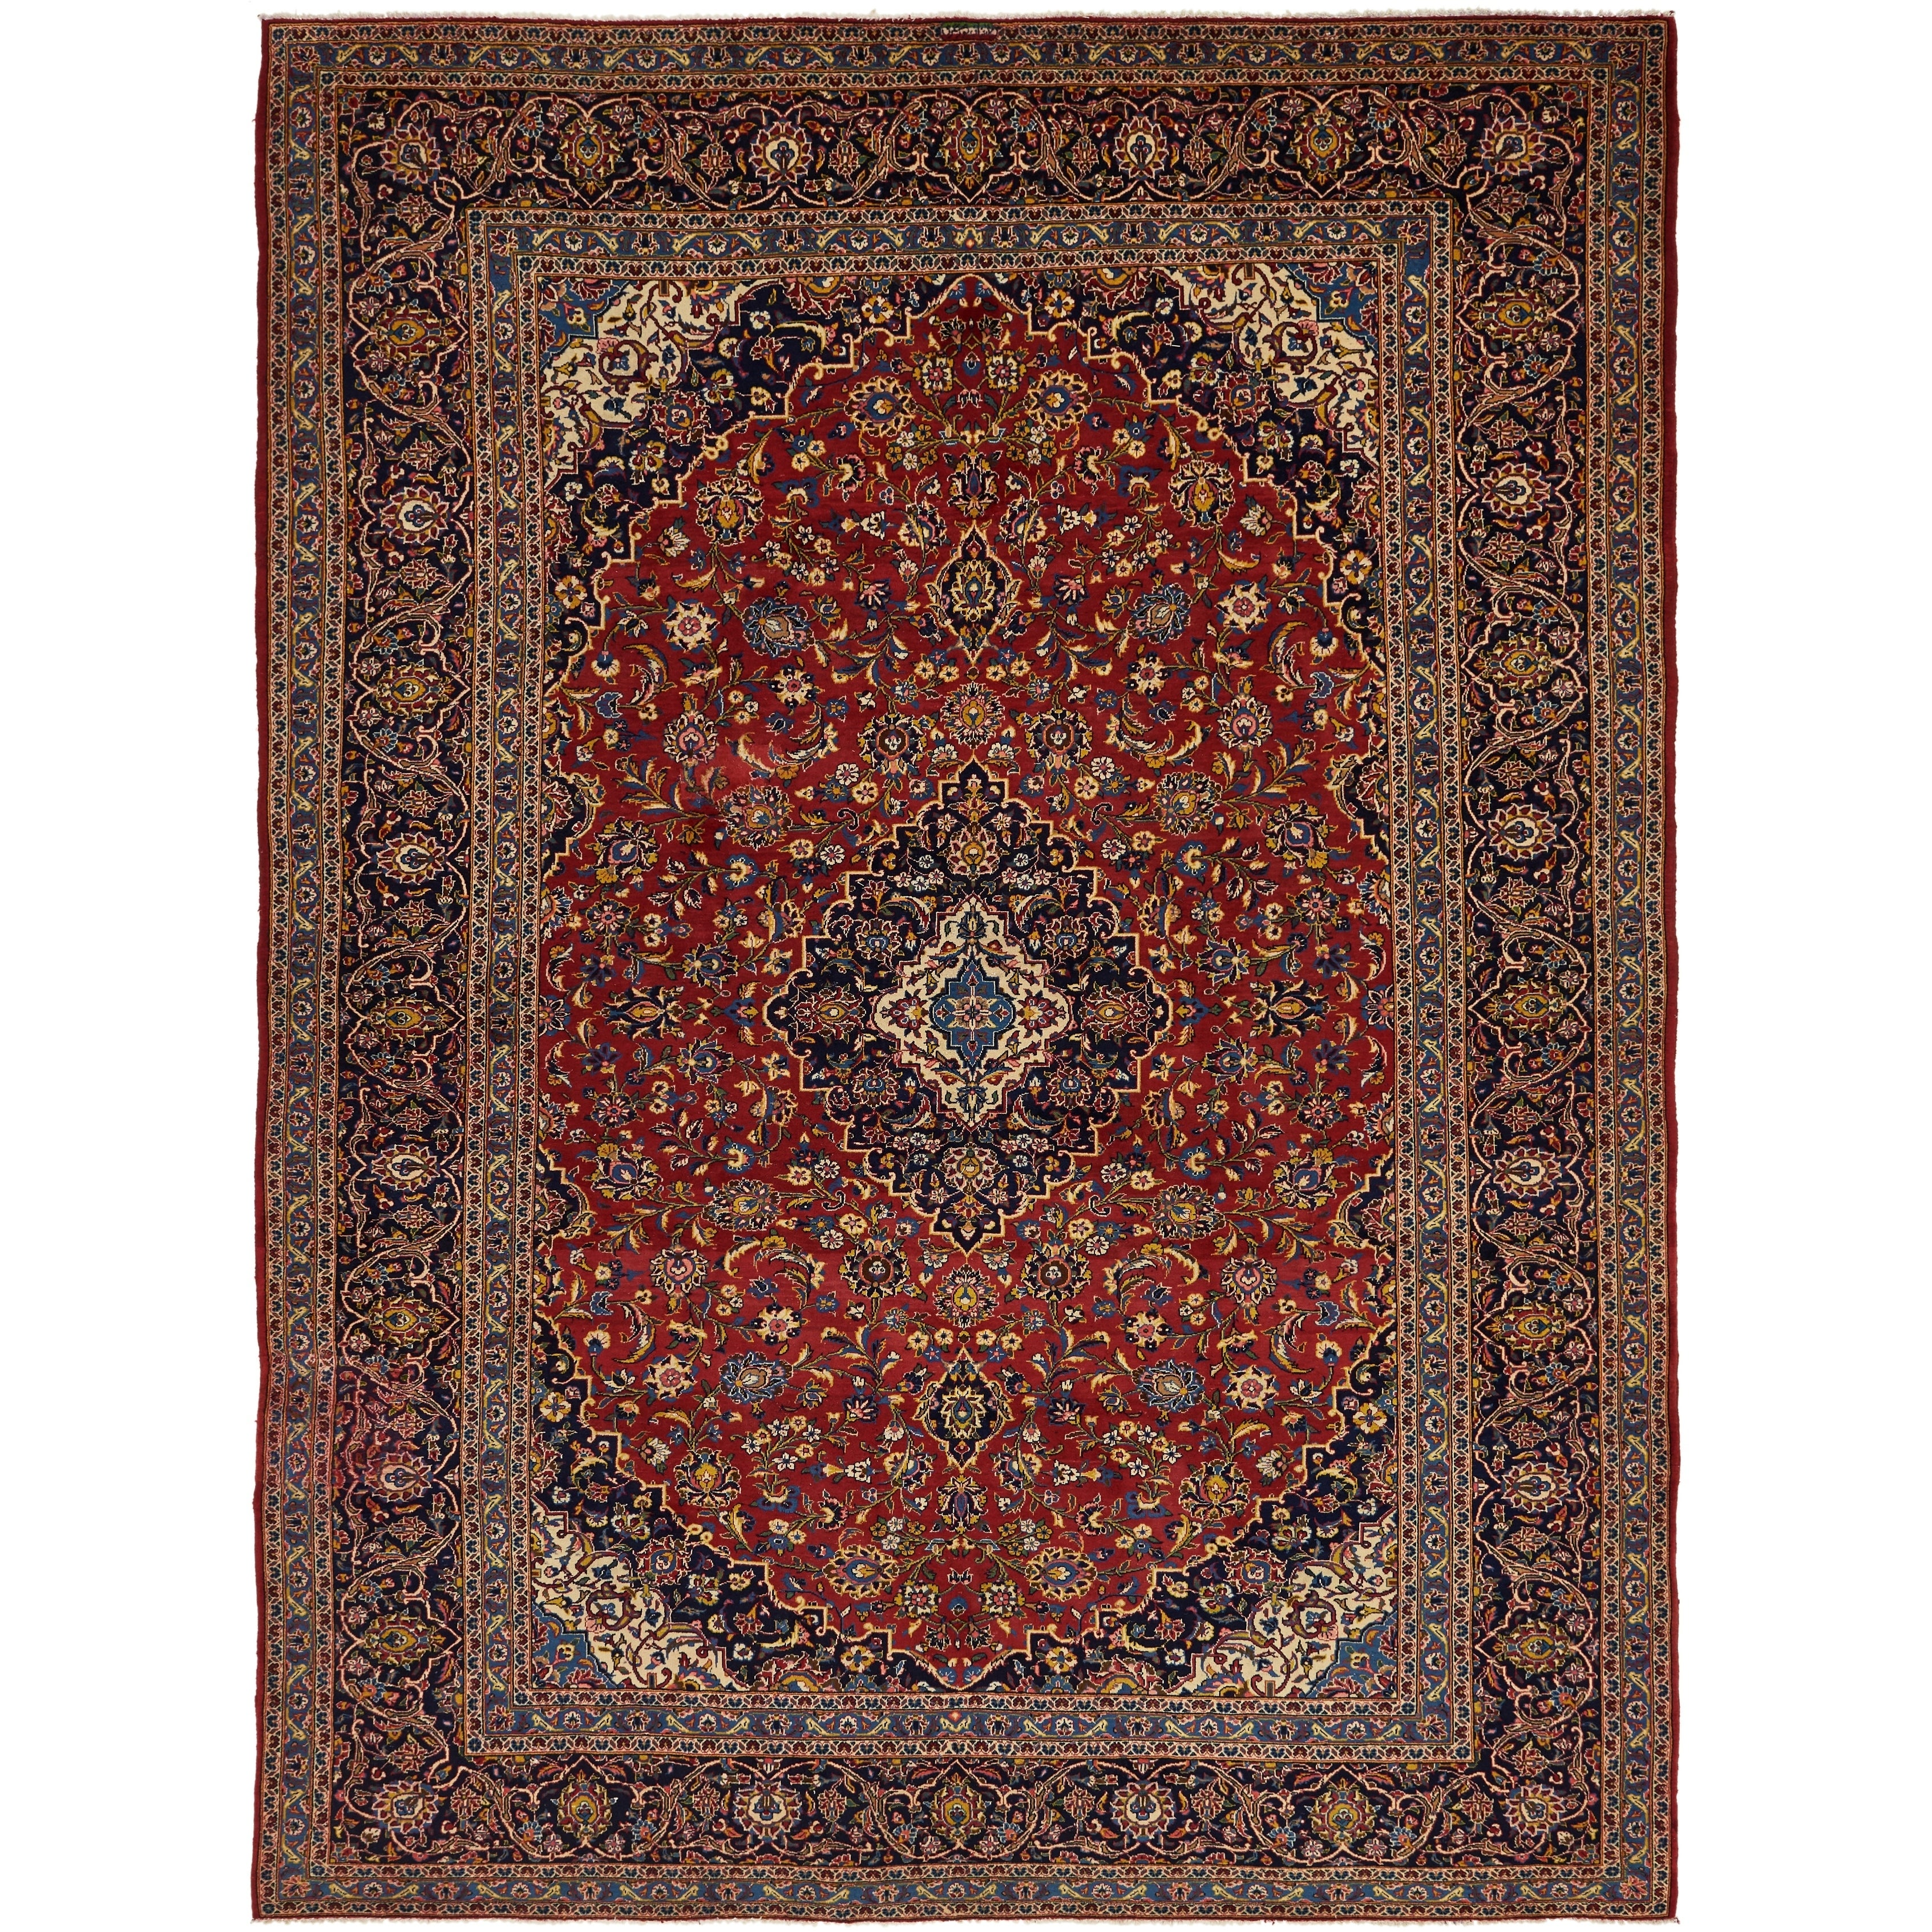 Hand Knotted Kashan Semi Antique Wool Area Rug - 9 6 x 13 (Red - 9 6 x 13)